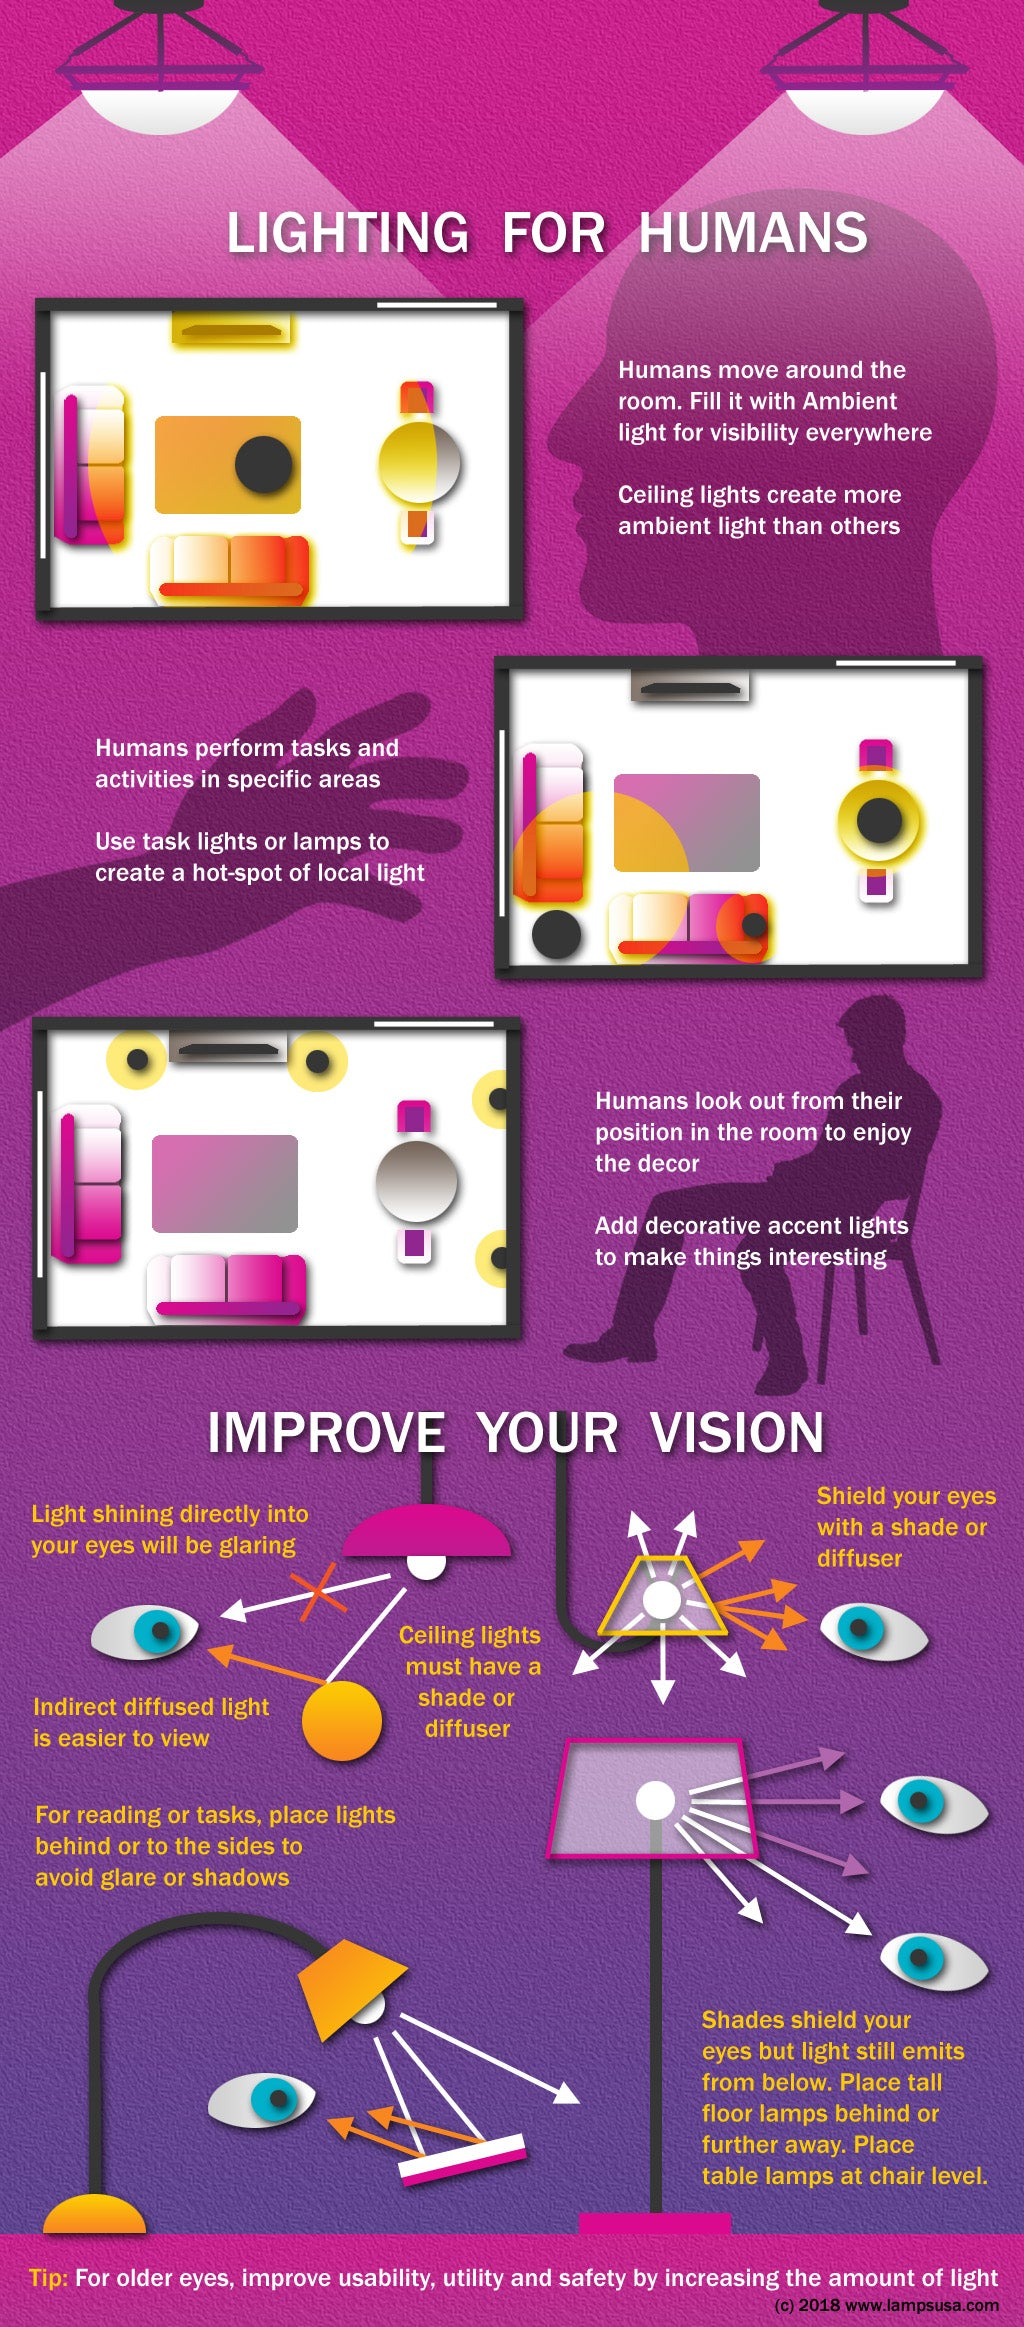 Light Fixtures The Ultimate Guide To Room Lighting Lampsusa Used Create Color Changes Using 4 Bright Led S Mounted In Corners For Humans Improve Your Eyesight Vision